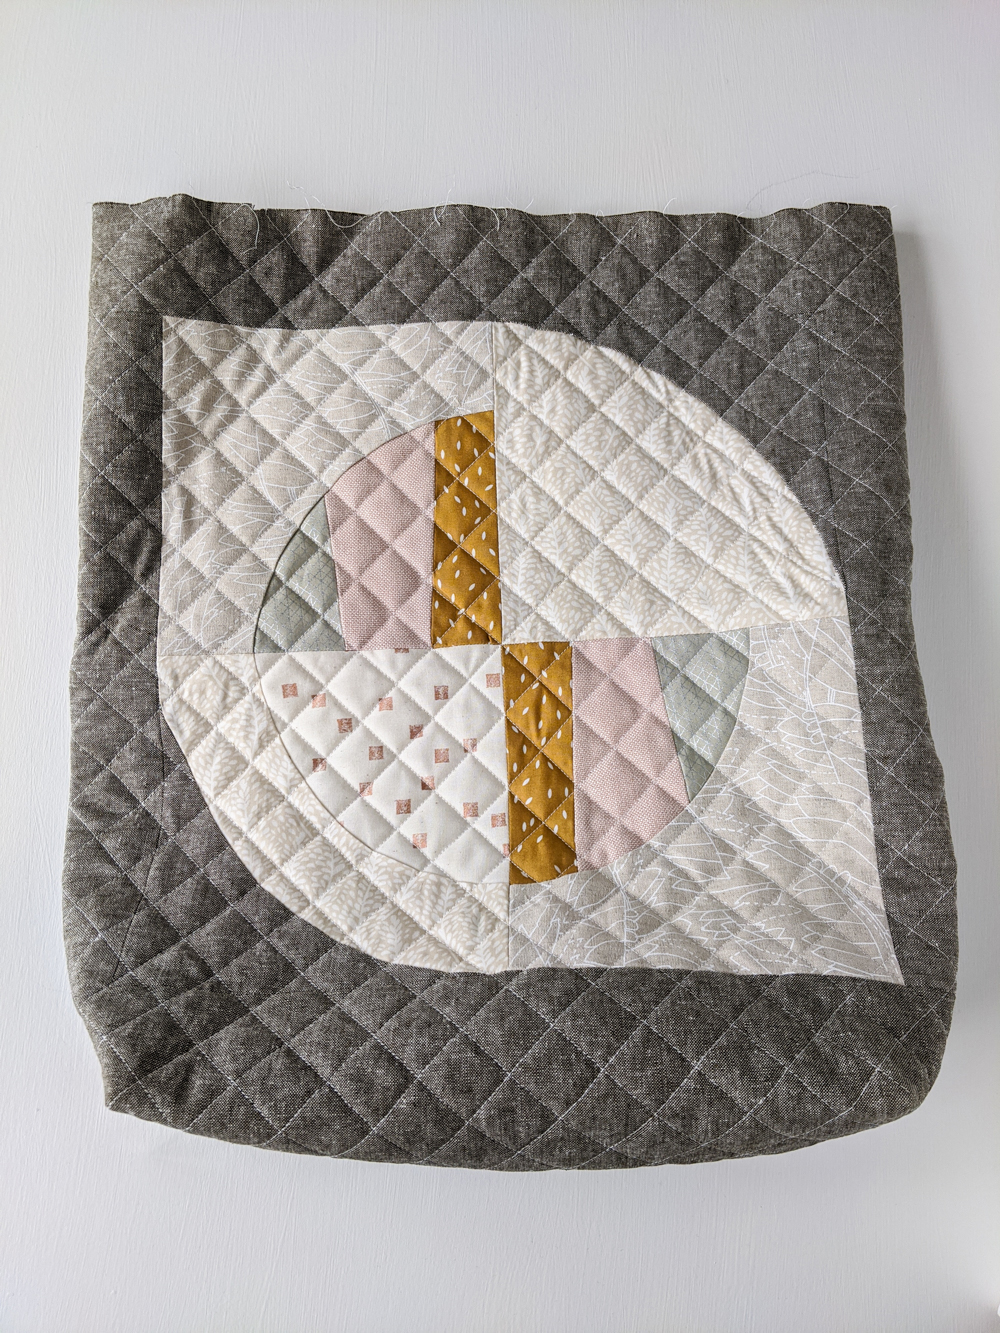 This FREE quilted tote bag tutorial shows step by step how to create a large tote bag using the Modern Fans quilt block pattern. suzyquilts.com #sewingtutorial